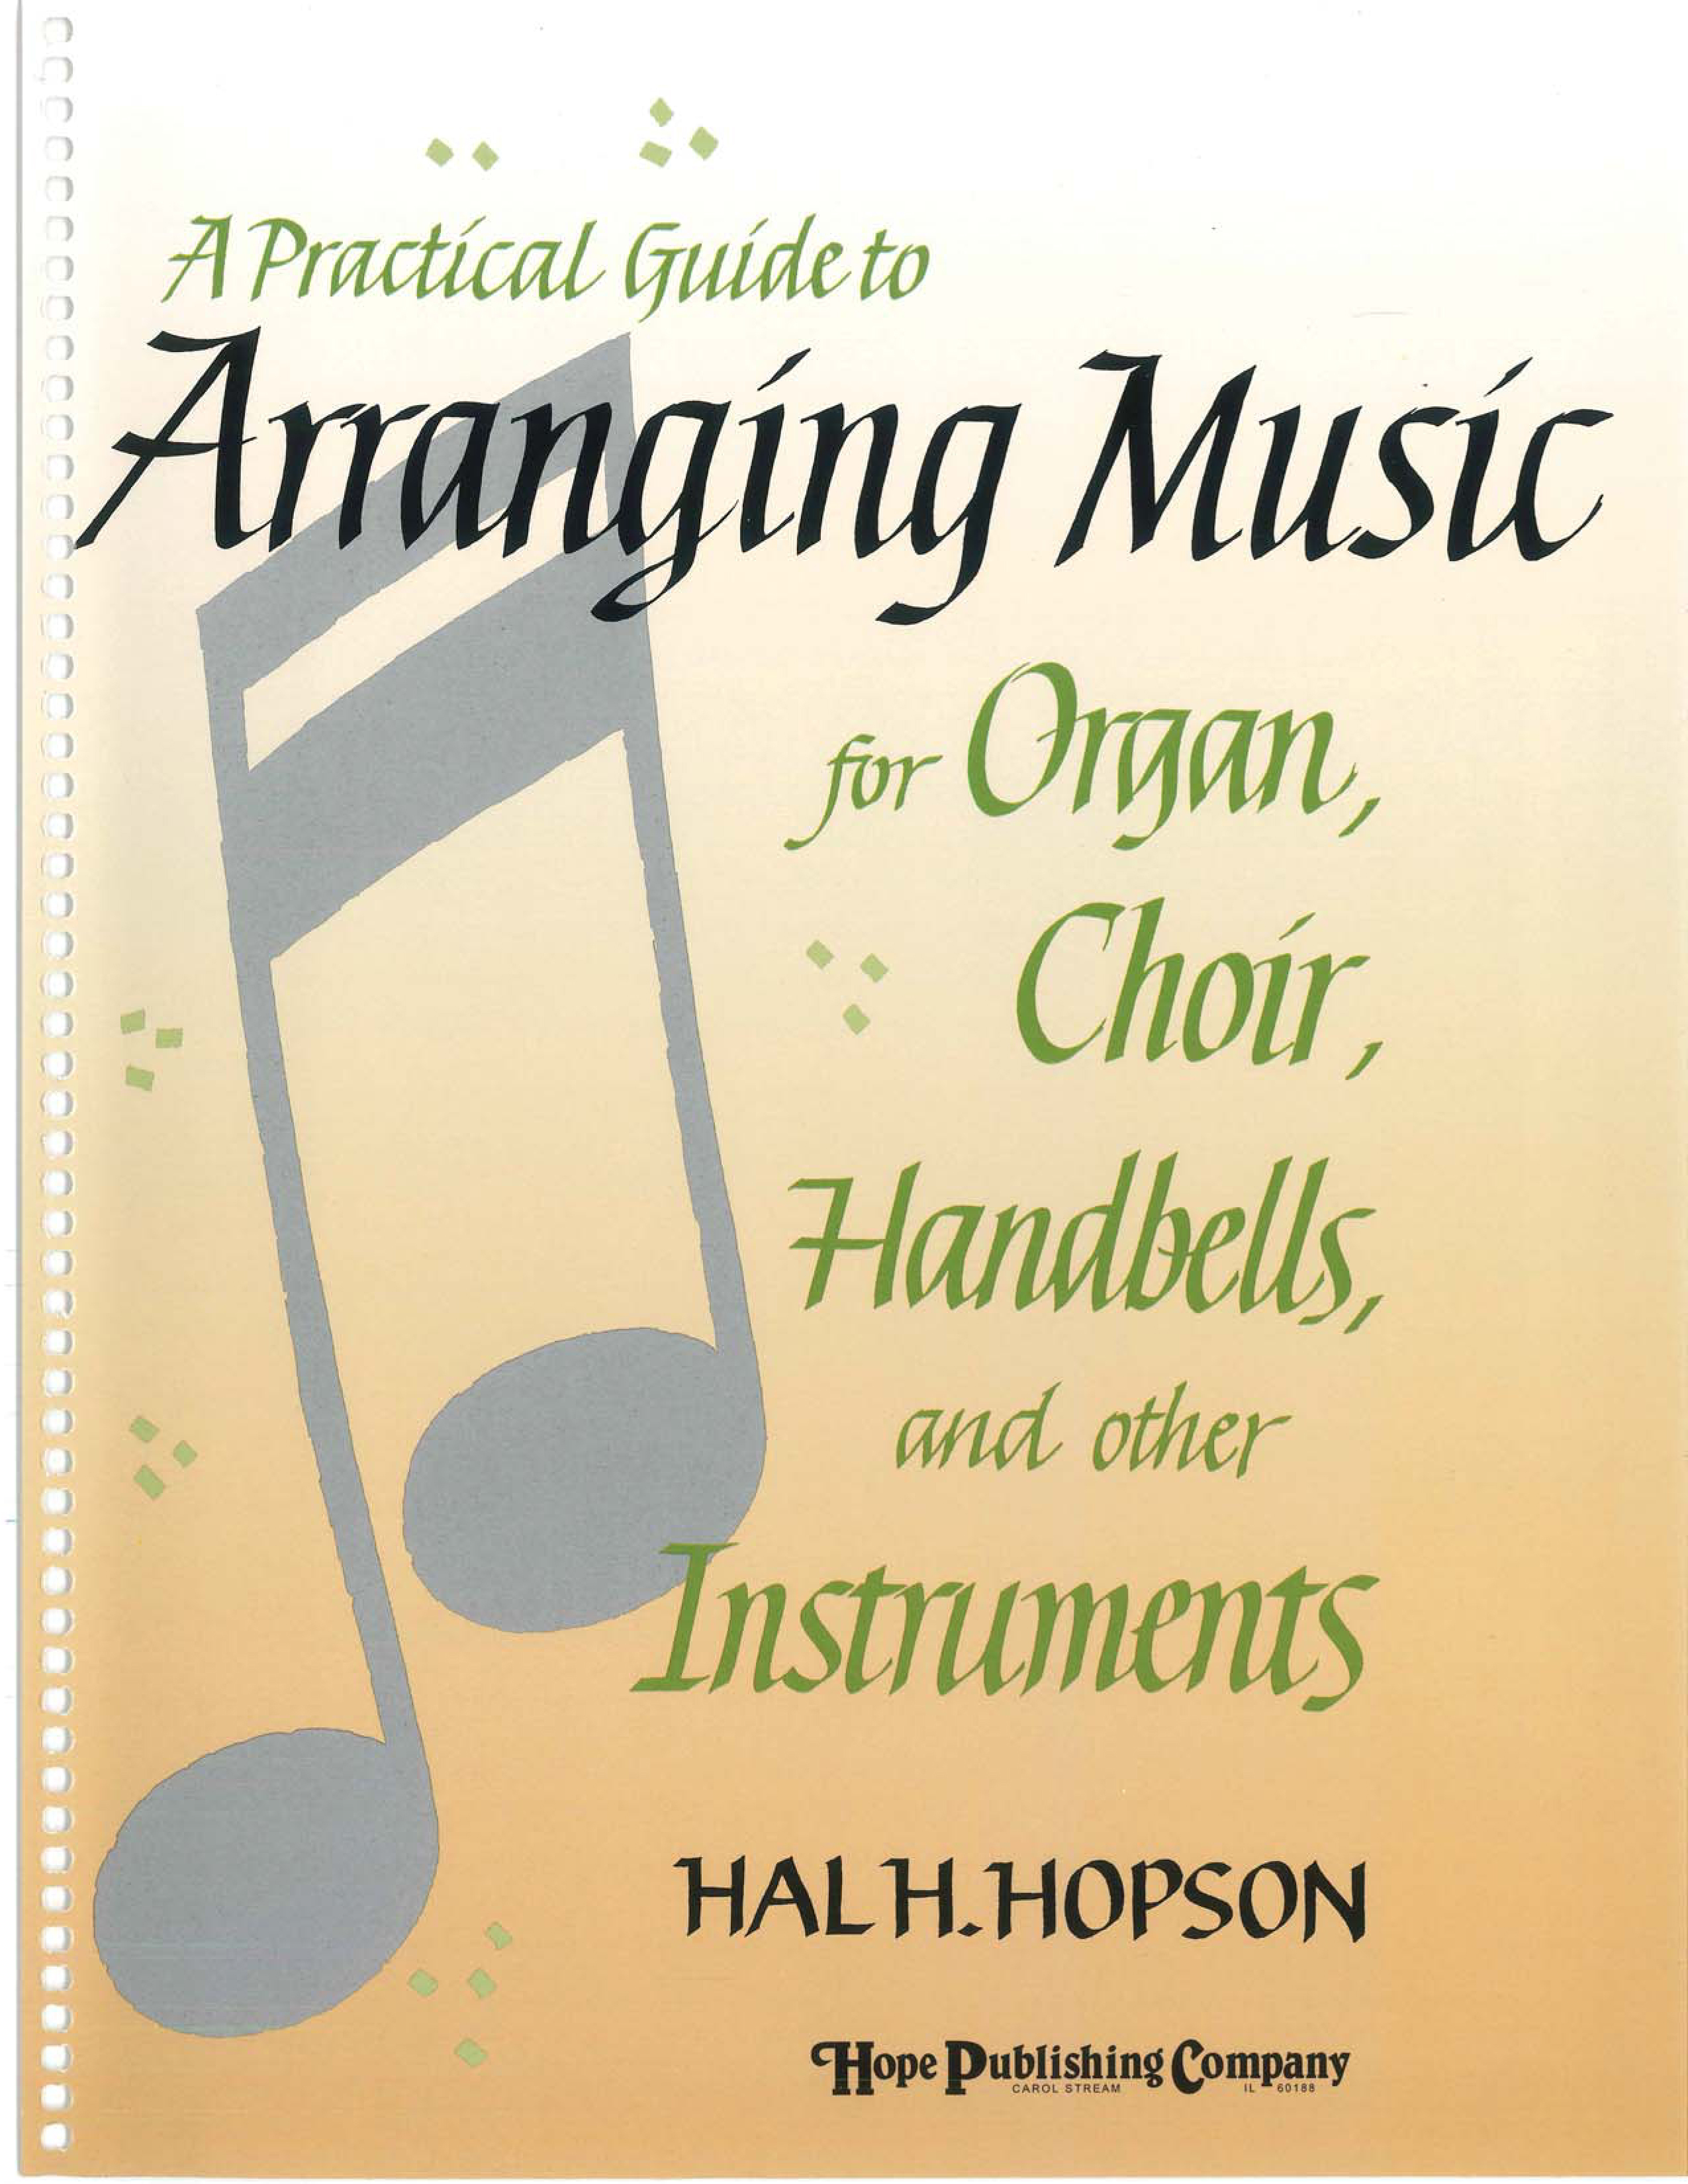 Practical Guide to Arranging Music for Organ Choir Handbells and Other Instrumen Cover Image